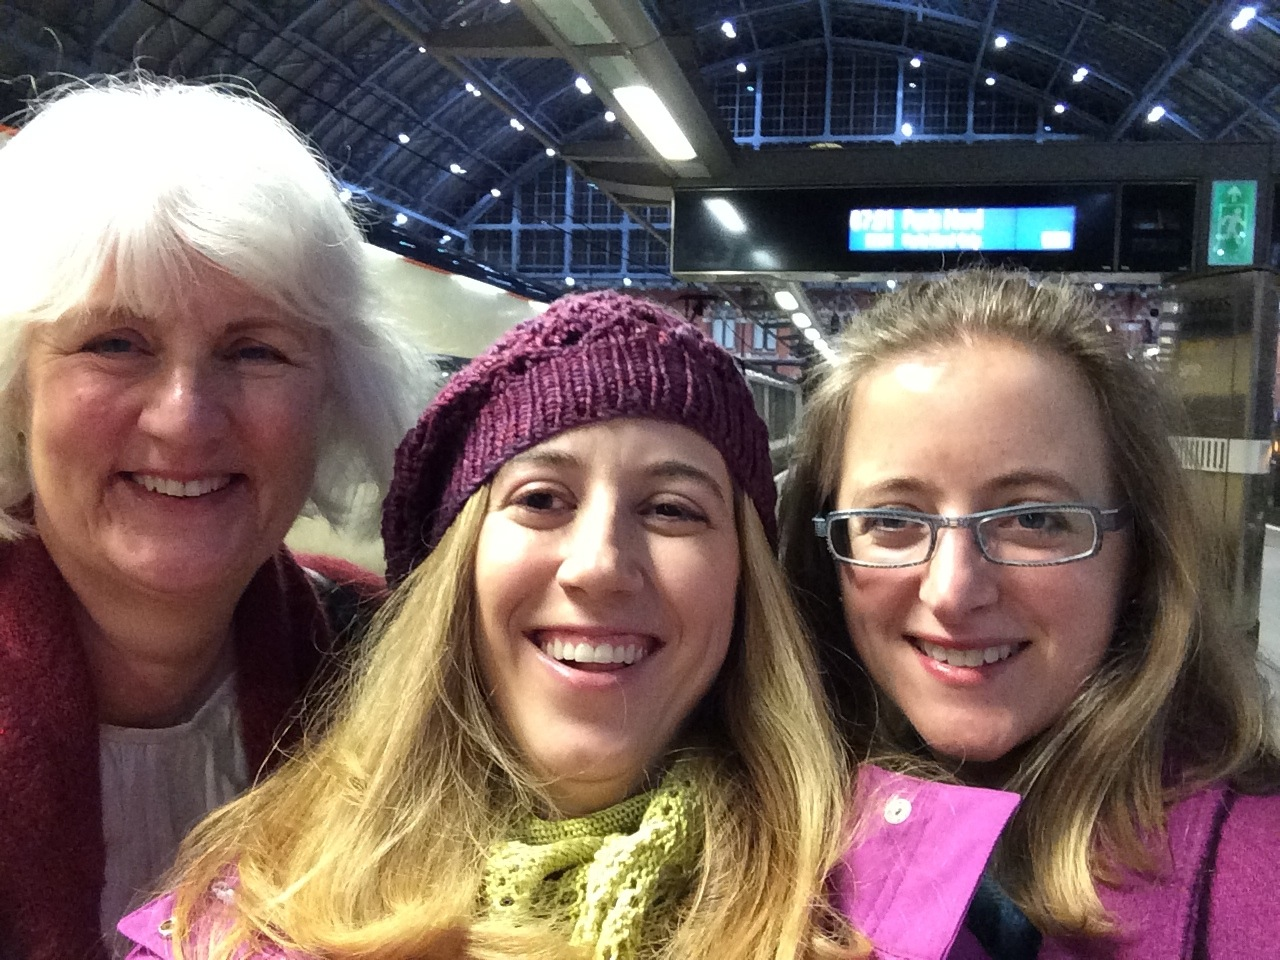 Catherine, Alli and Karen ready to catch that 7:01am train!